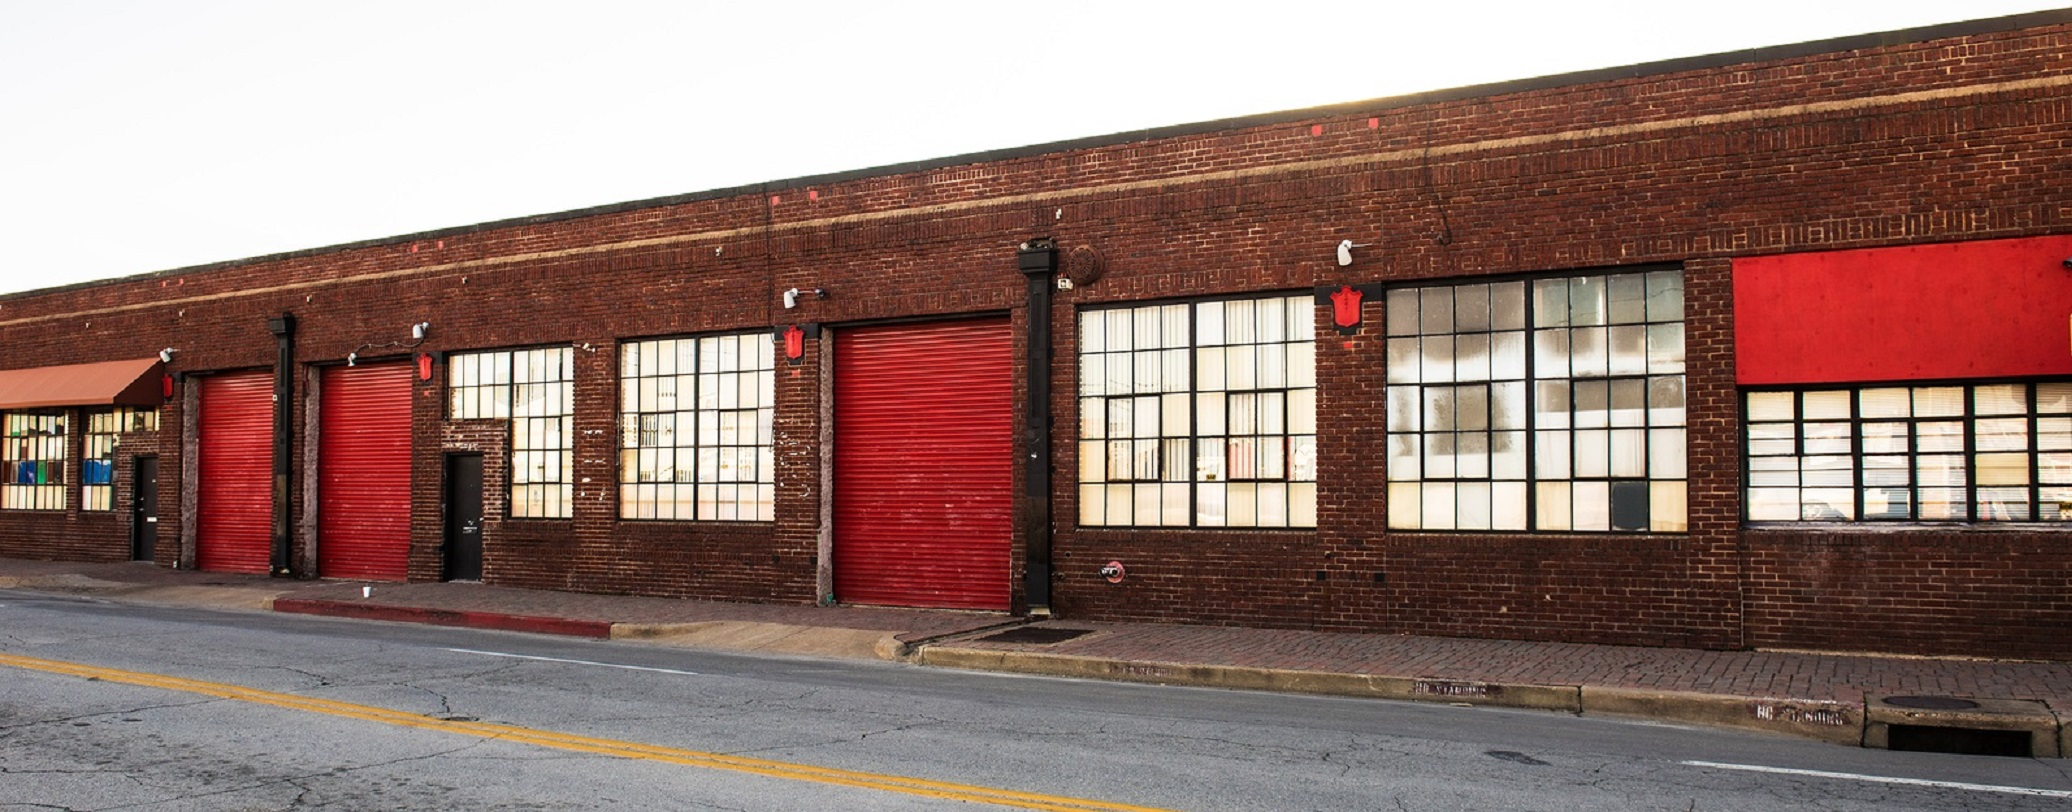 Image of old vintage warehouses in run down part of town